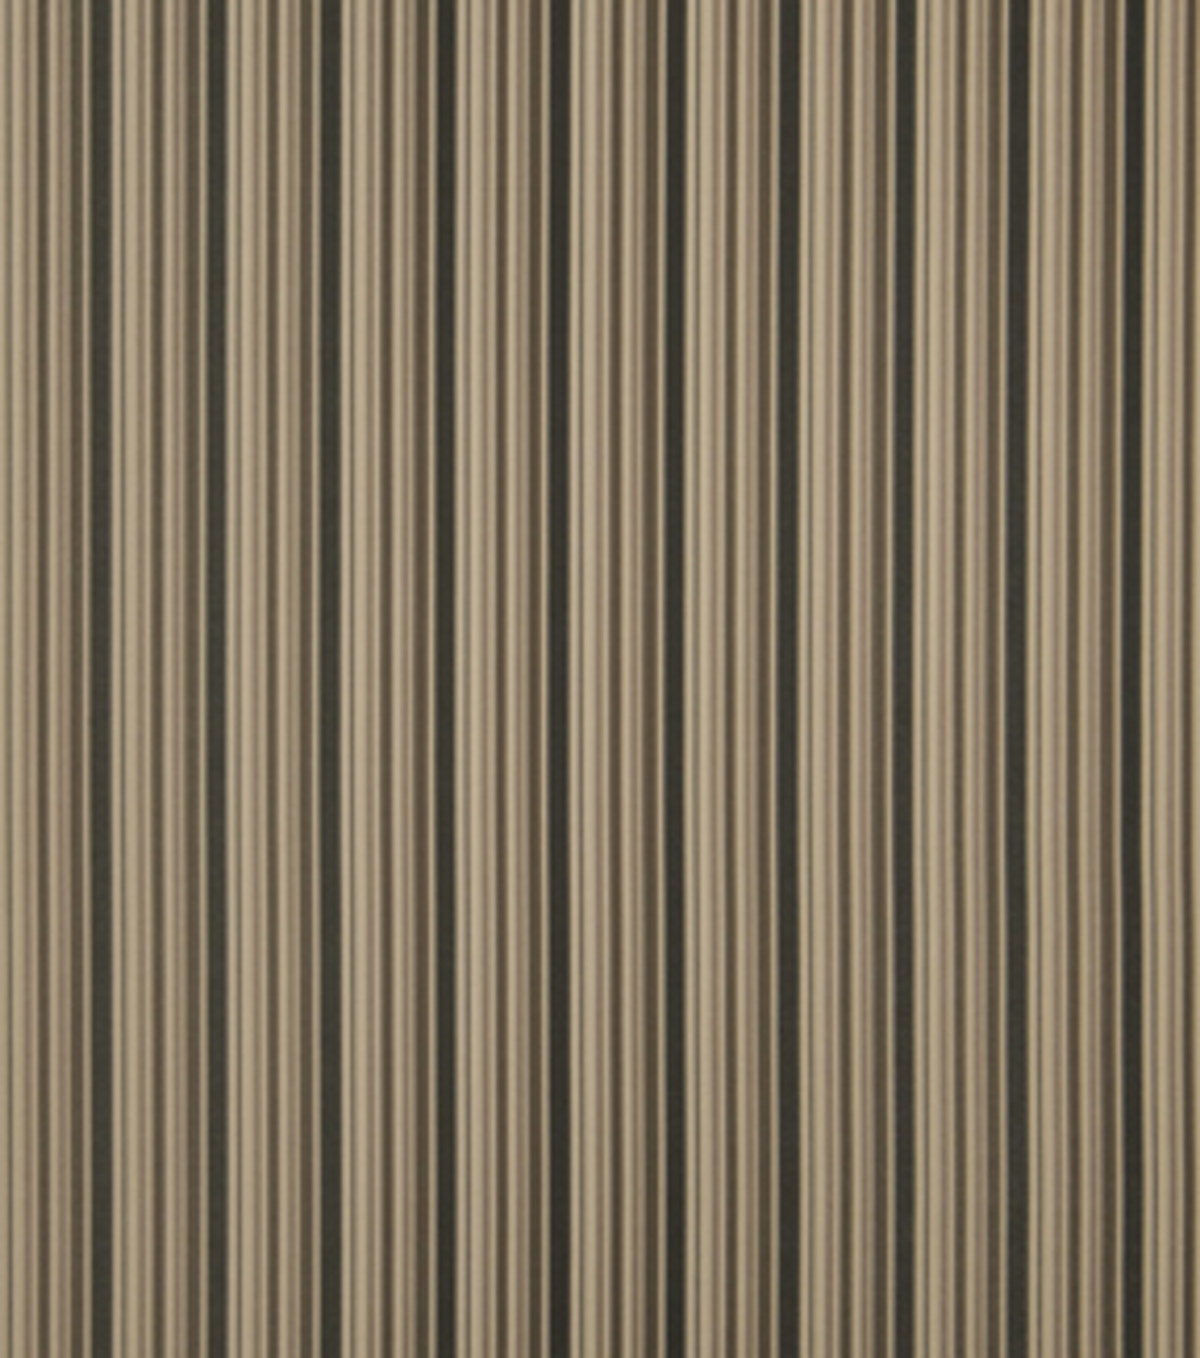 Home Decor 8\u0022x8\u0022 Fabric Swatch-Eaton Square Meadowlark Ash